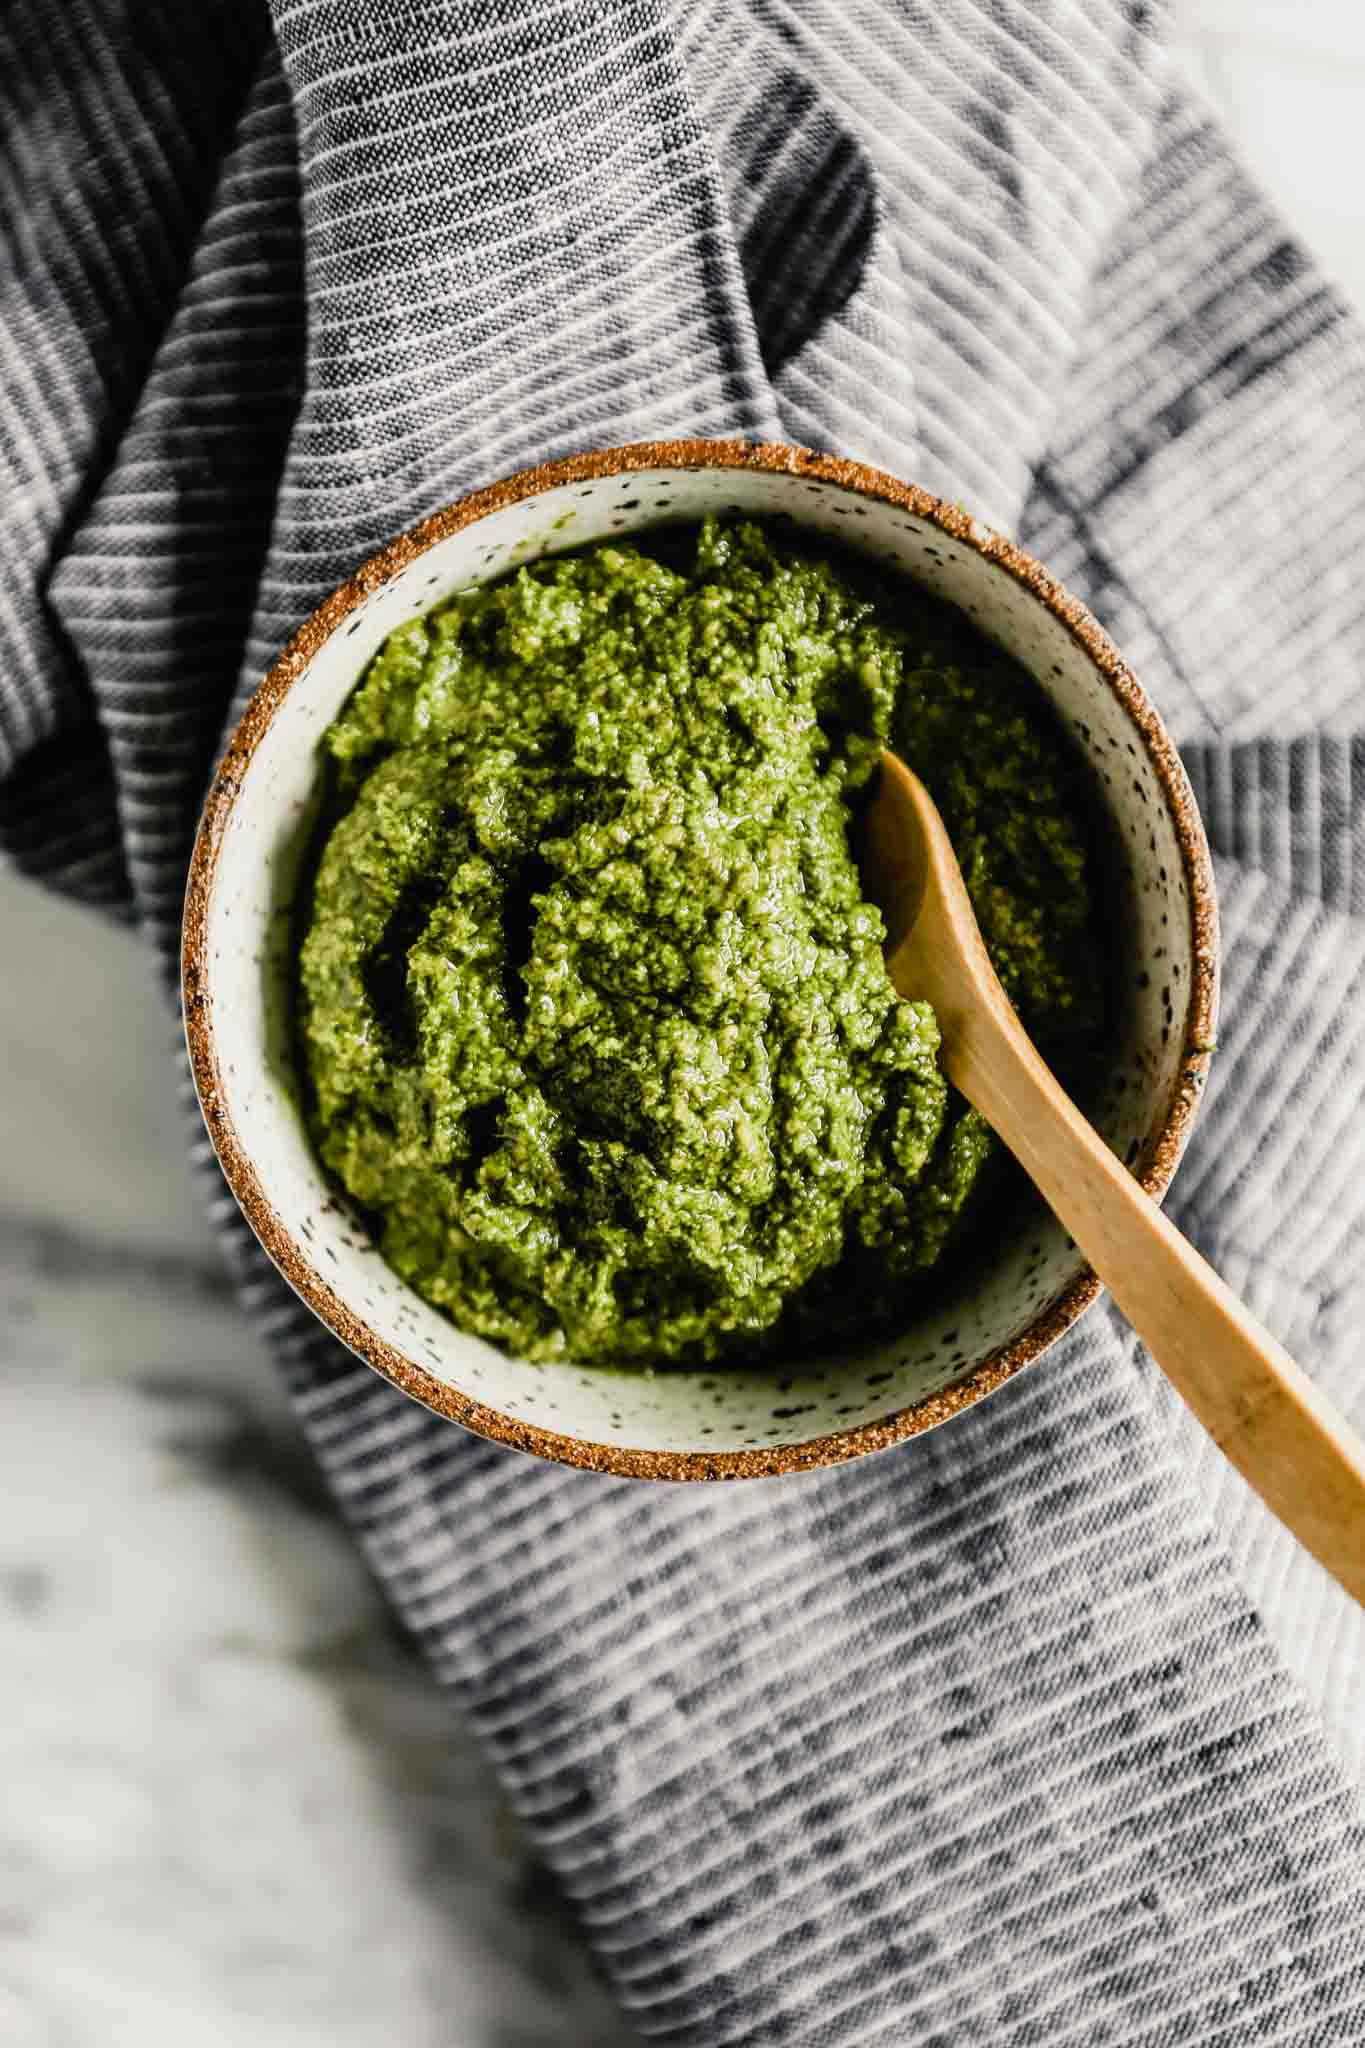 Photograph of bright green carrot top pesto in a speckled bowl